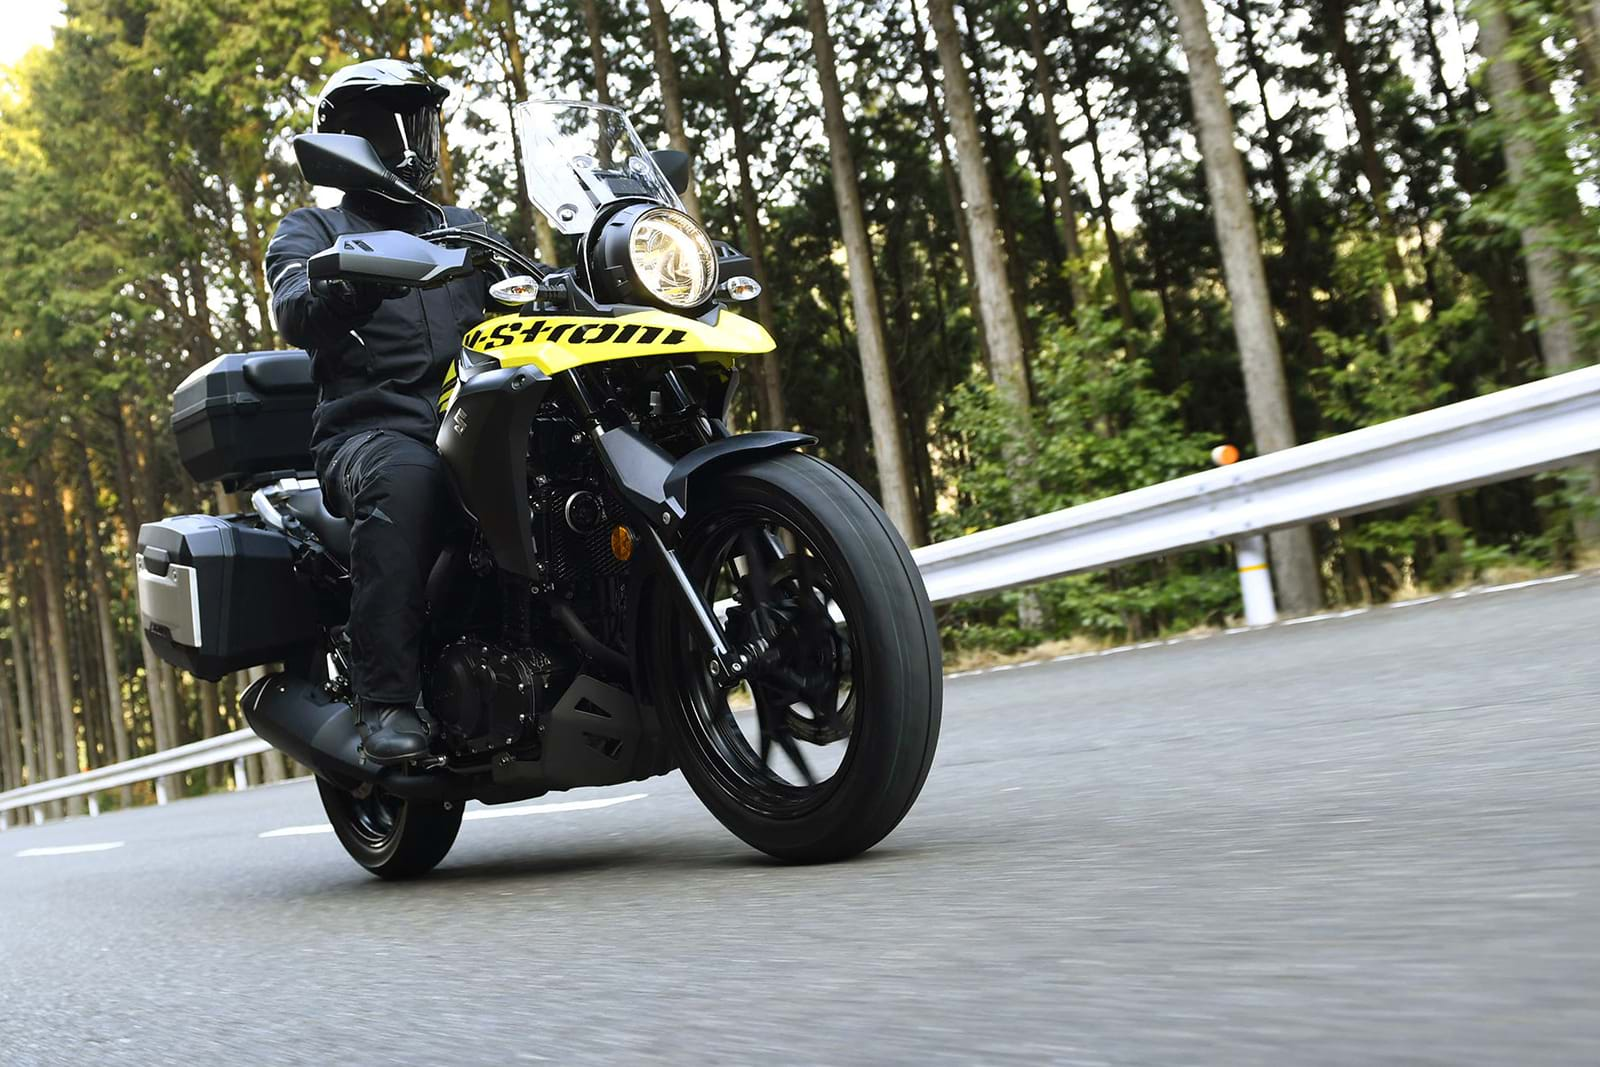 Suzuki V-Strom 250 adventure sport touring motorcycle in action